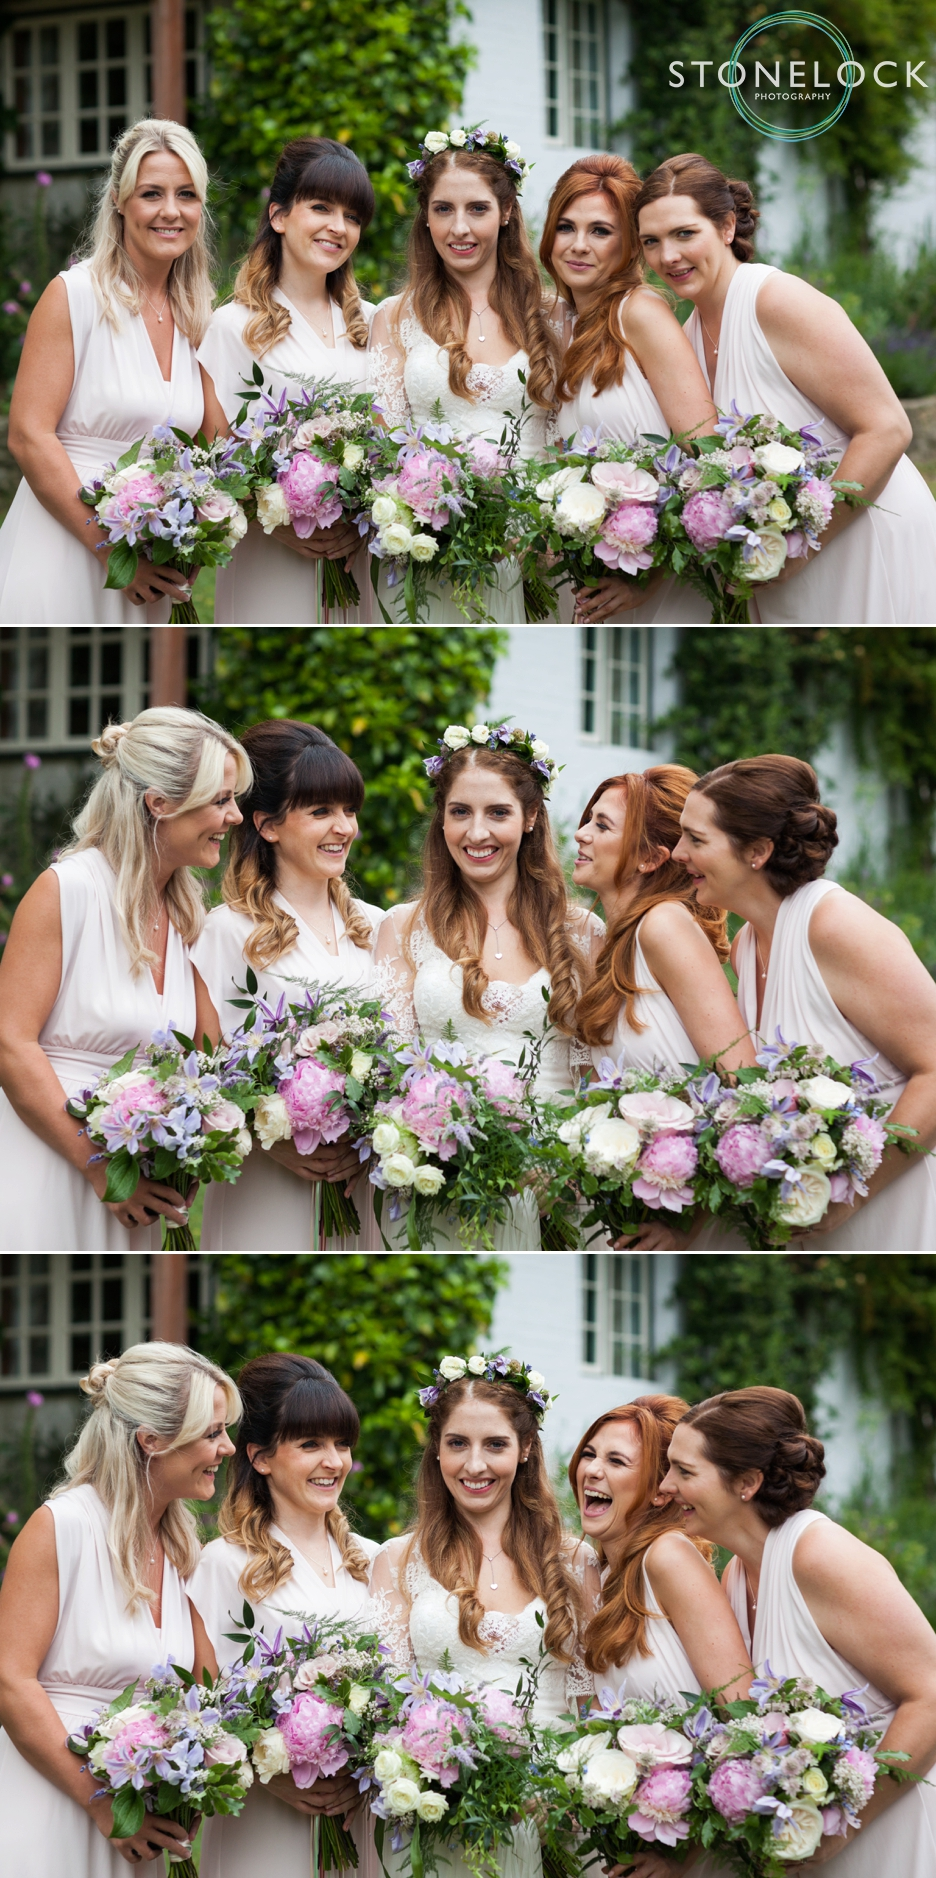 Wedding photography at Ridge Farm Studios, Dorking, Surrey. The bride & her bridesmaids.